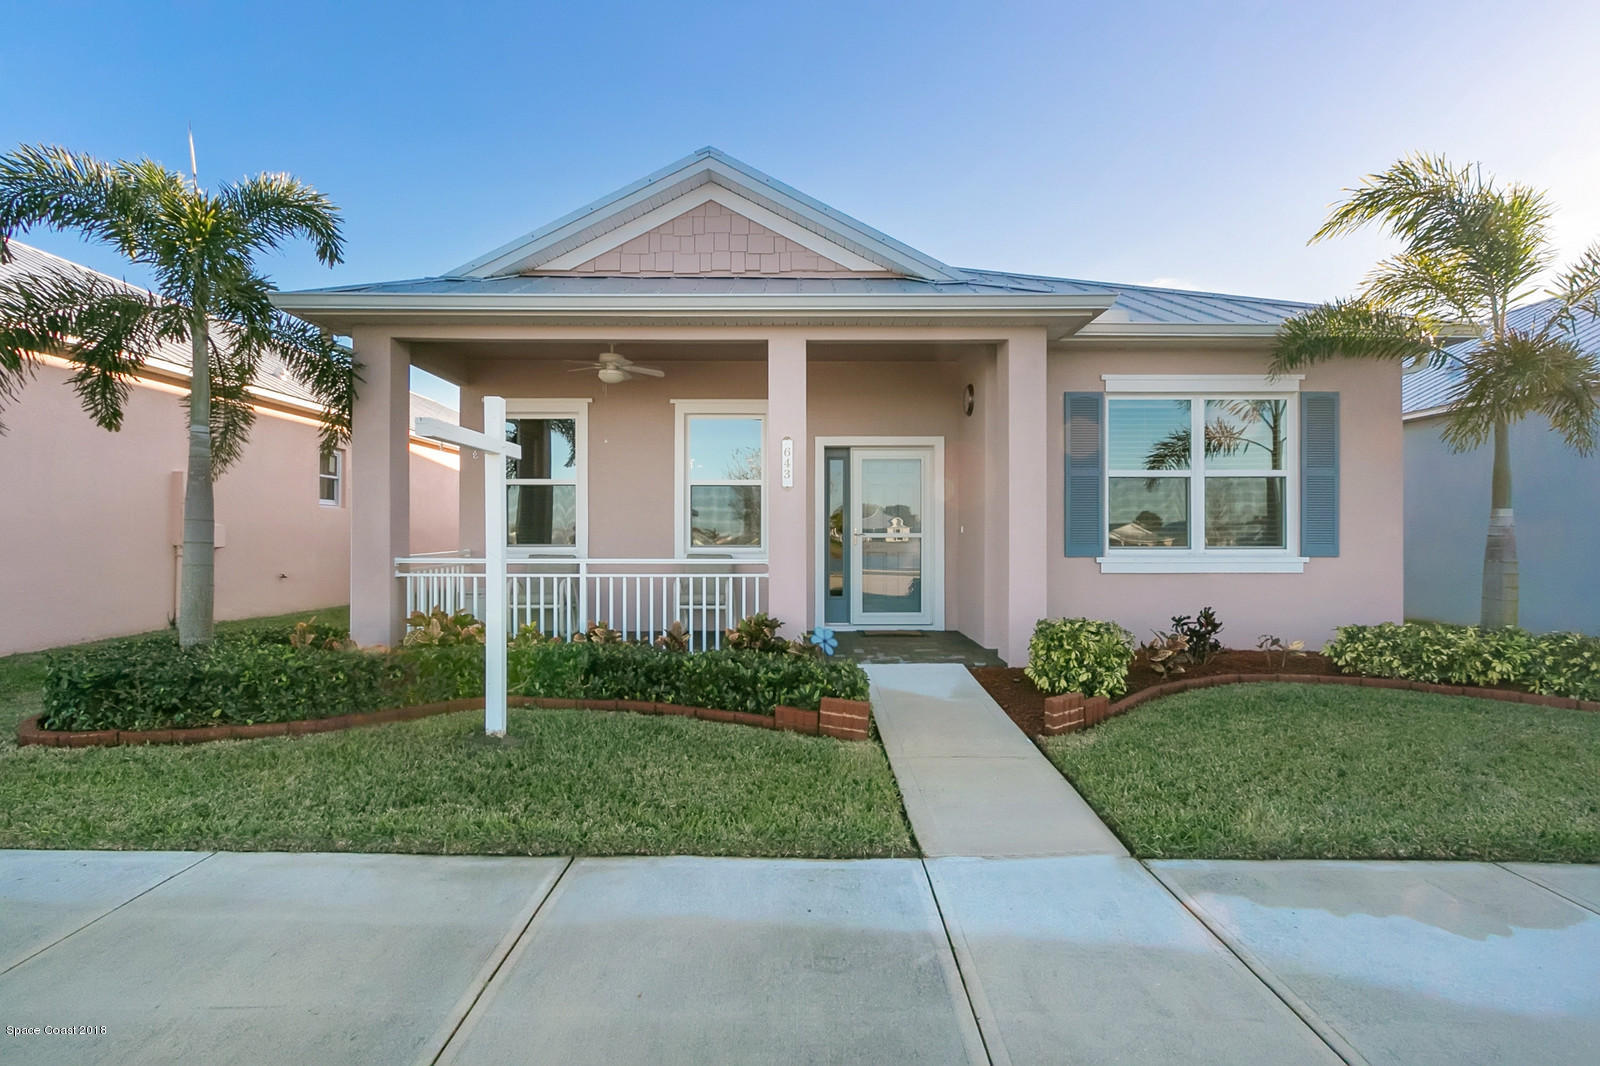 Single Family Home for Sale at 643 Heming 643 Heming Melbourne, Florida 32901 United States